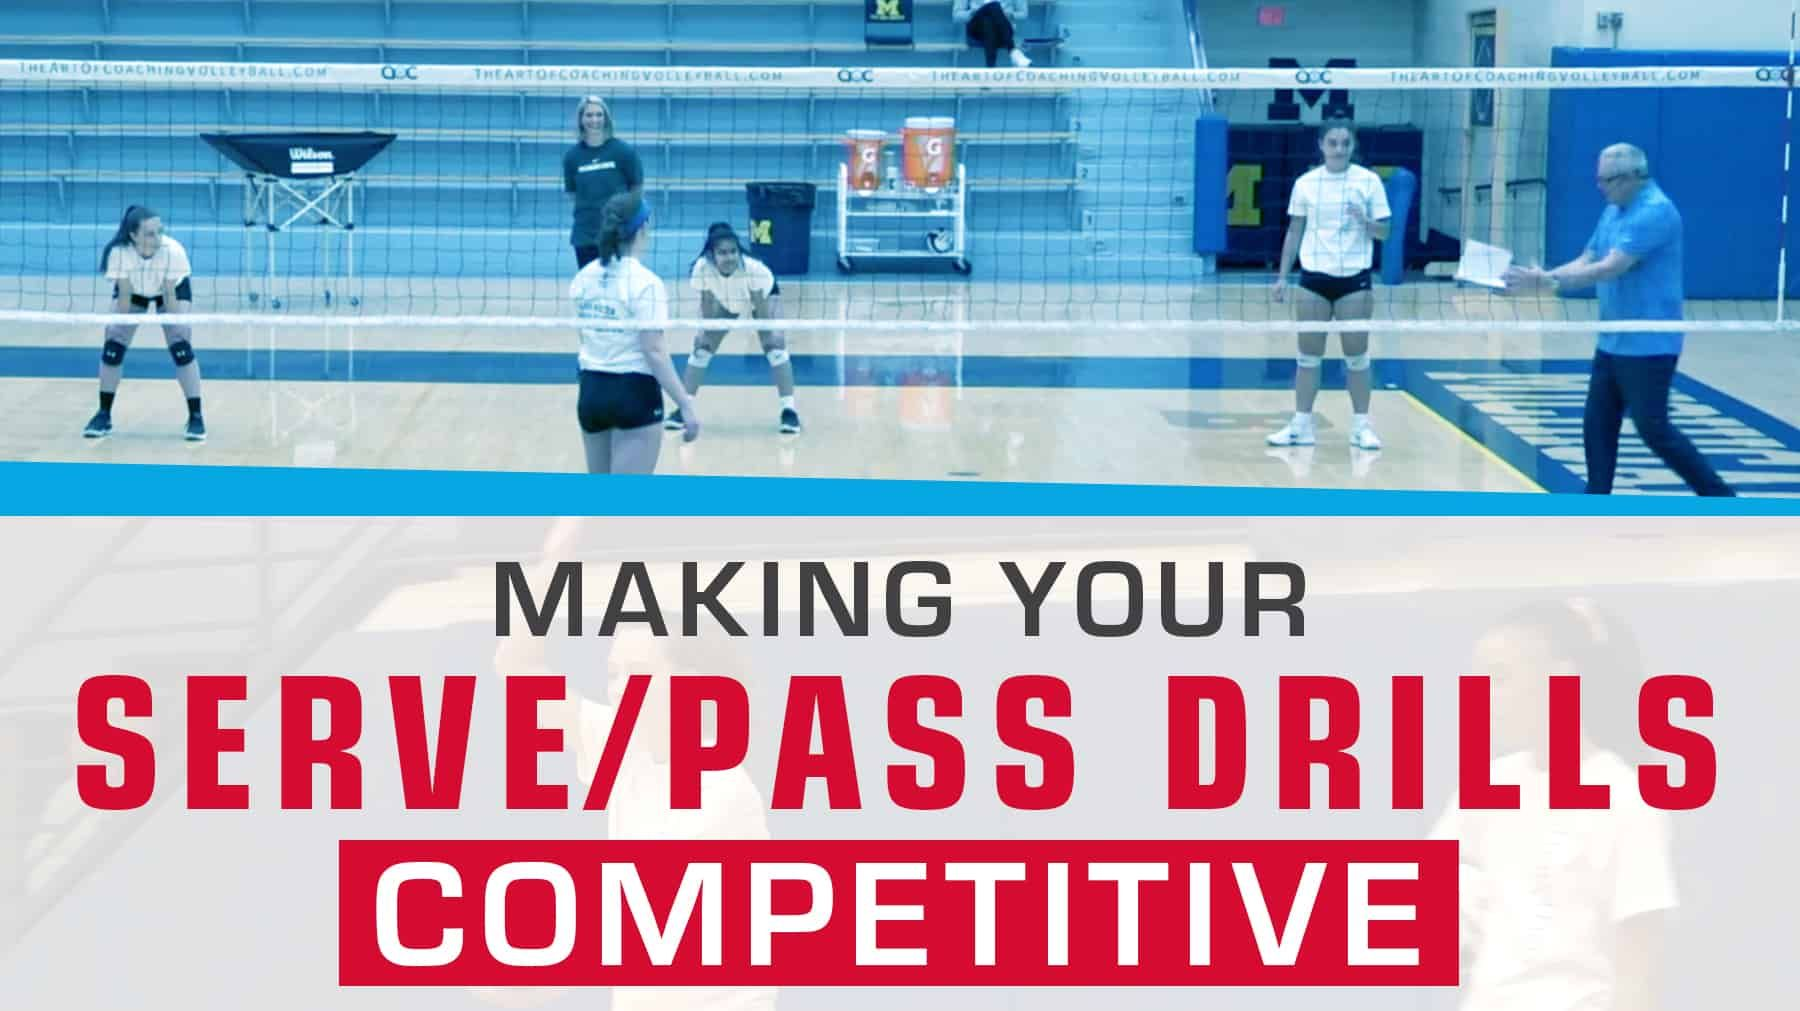 Making Your Serve Pass Drills Competitive With Images Coaching Volleyball Volleyball Training Volleyball Skills